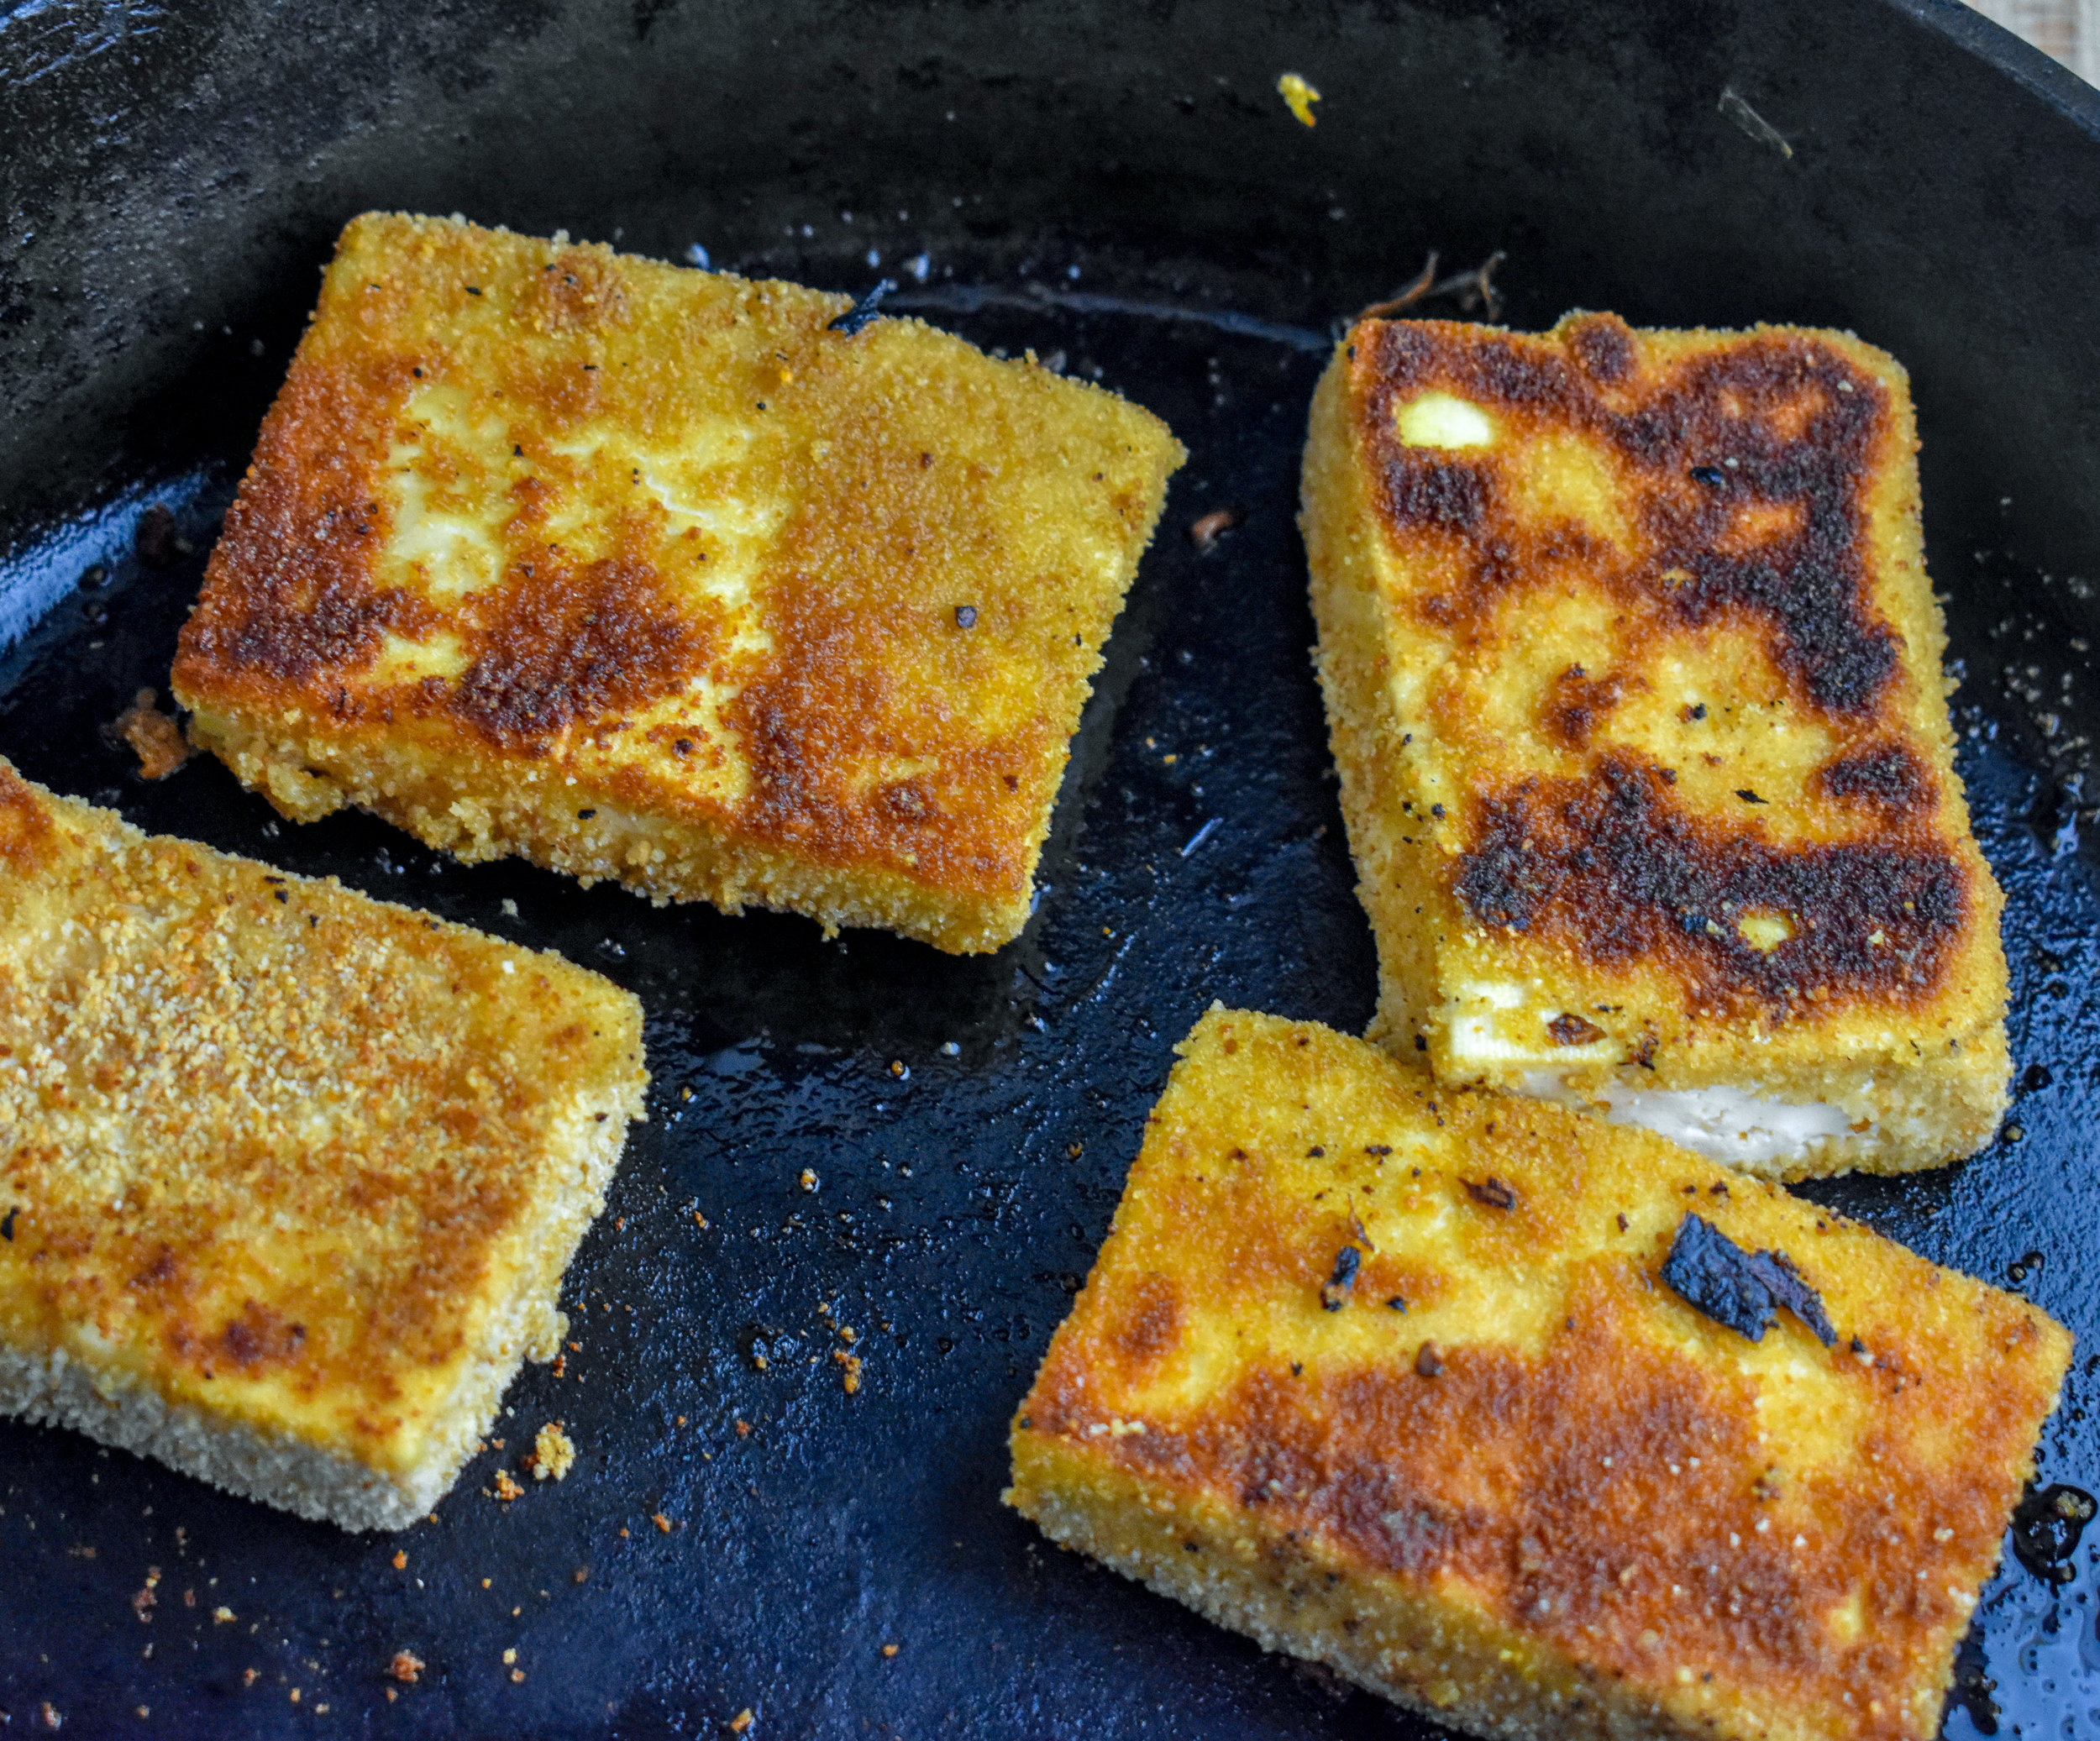 6. Once all four tofu cutlets are breaded, add to castiron pan, turn heat to medium low. cook for 3 minutes until golden brown on each side.